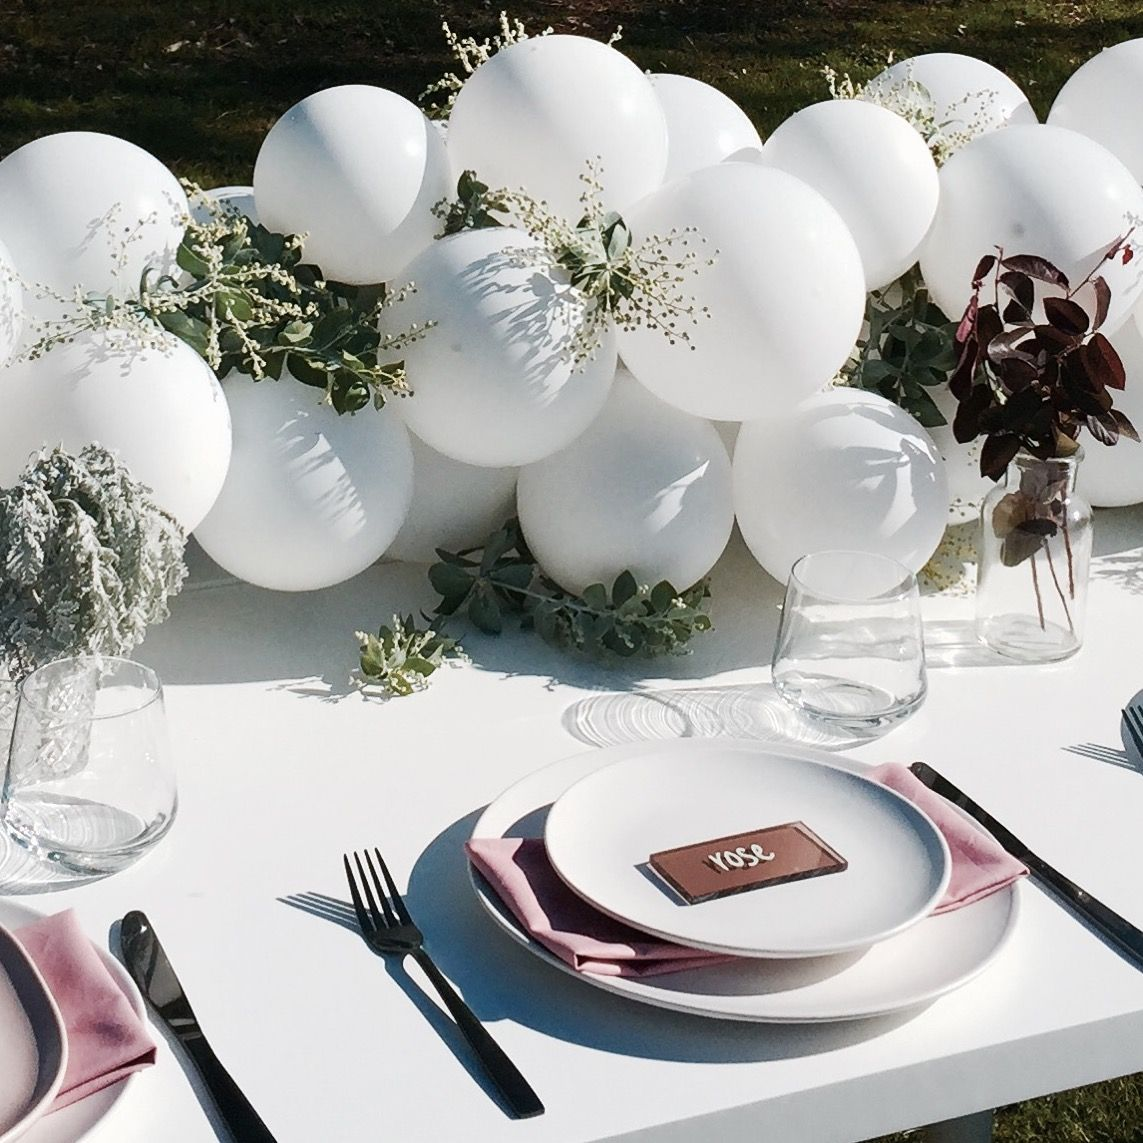 Mother's Day Lunch Table Setting! White Balloon Floral